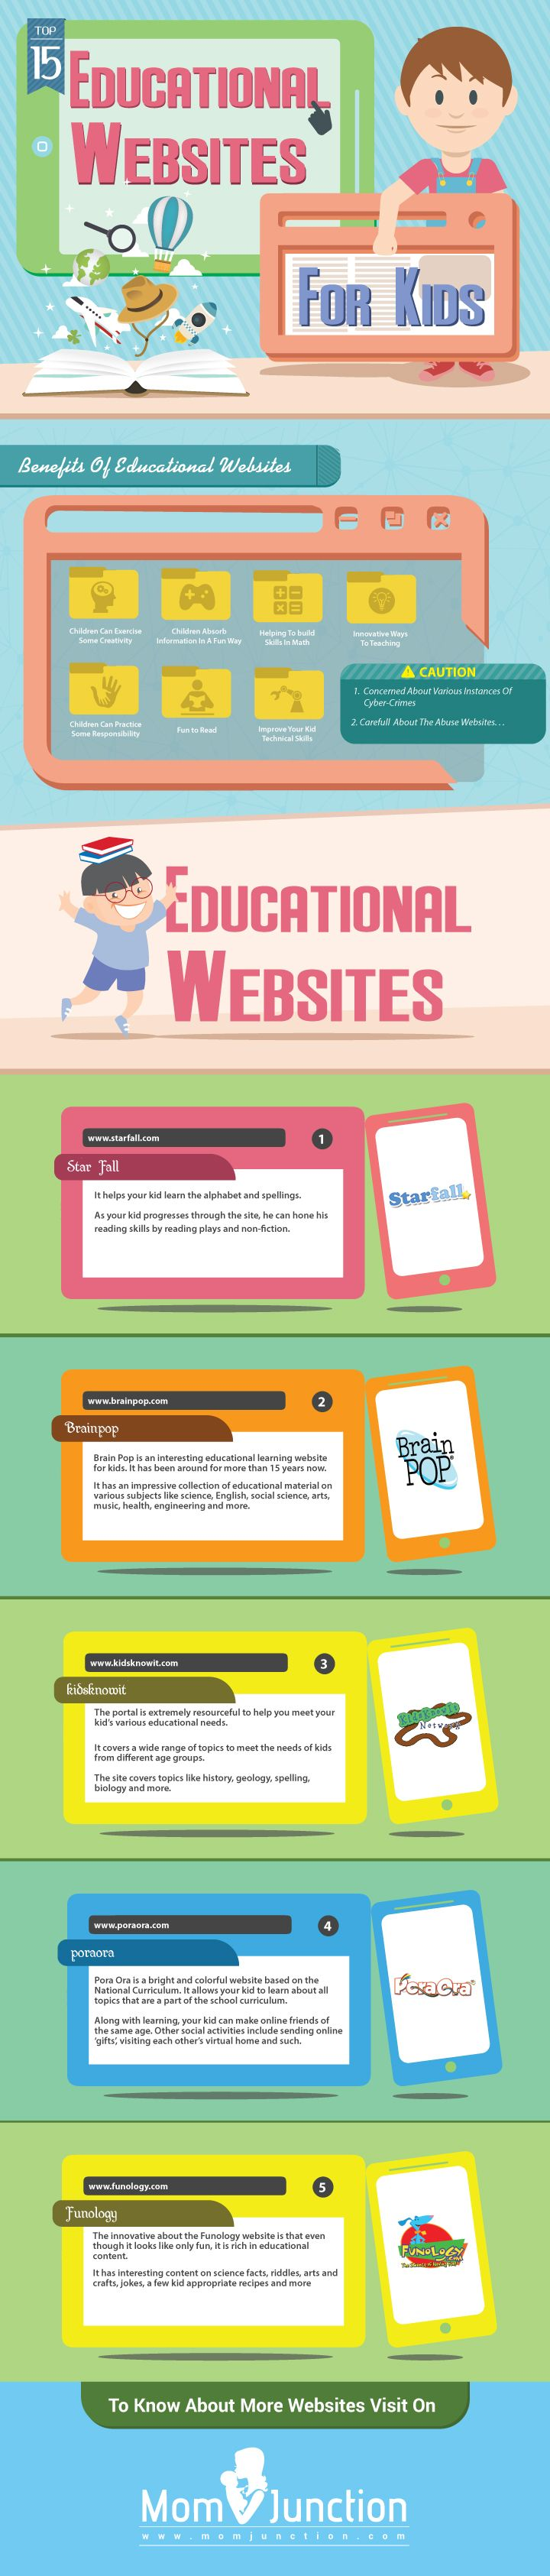 Worksheet Children Learning Site 17 best ideas about educational websites for kids on pinterest 15 useful kids